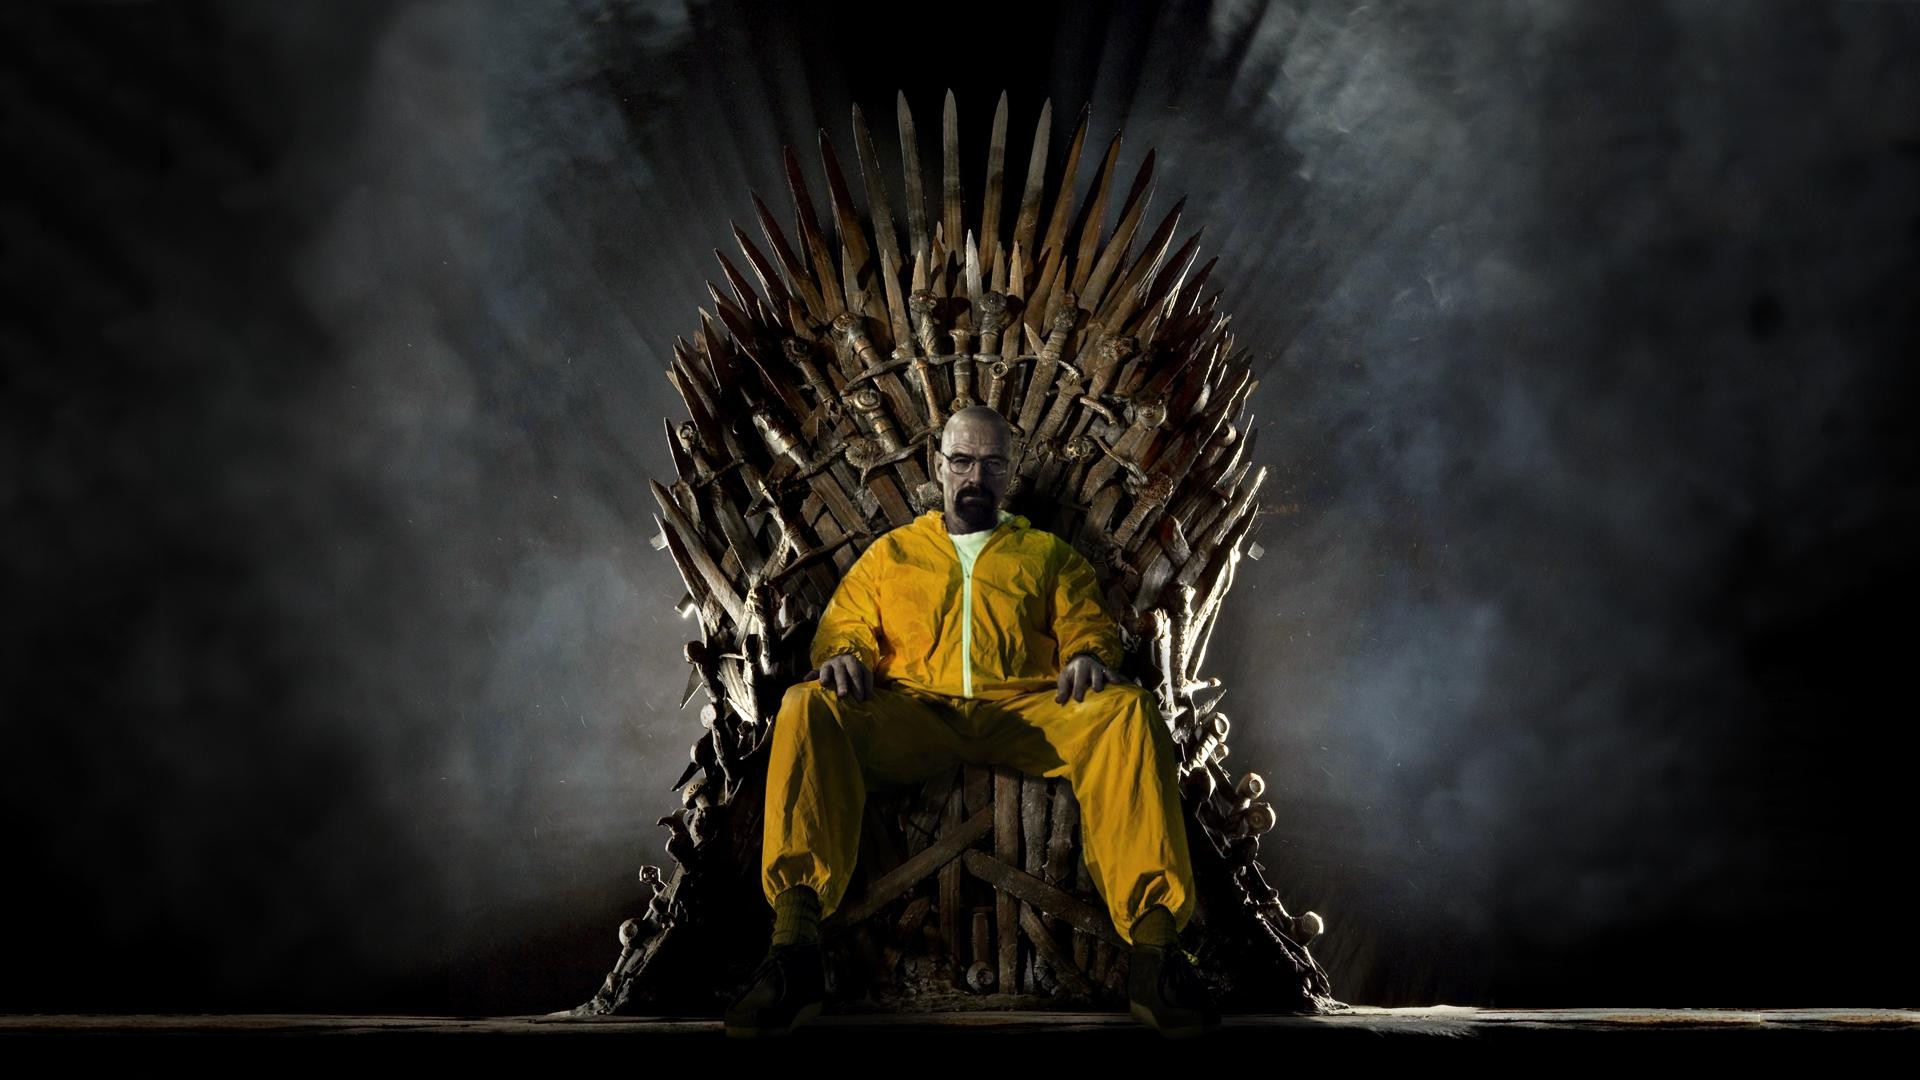 walter white on the iron throne breaking bad wallpaper